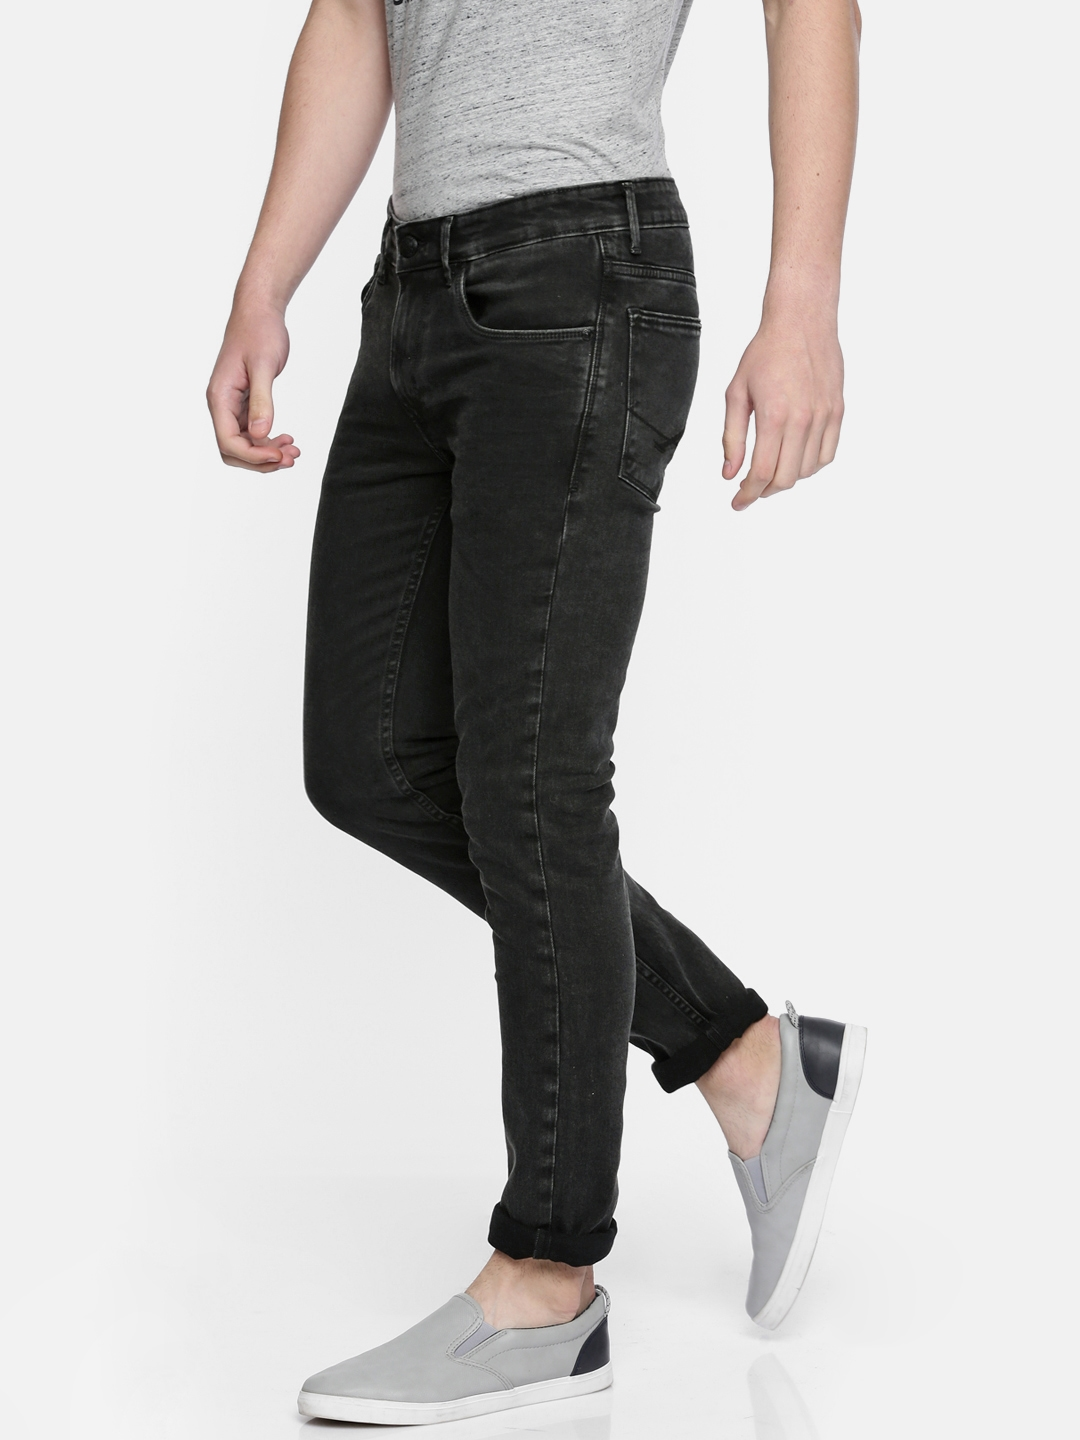 a9070ad95 U.S. Polo Assn. Denim Co. Men Black Skinny Fit Mid-Rise Clean Look  Stretchable Jeans